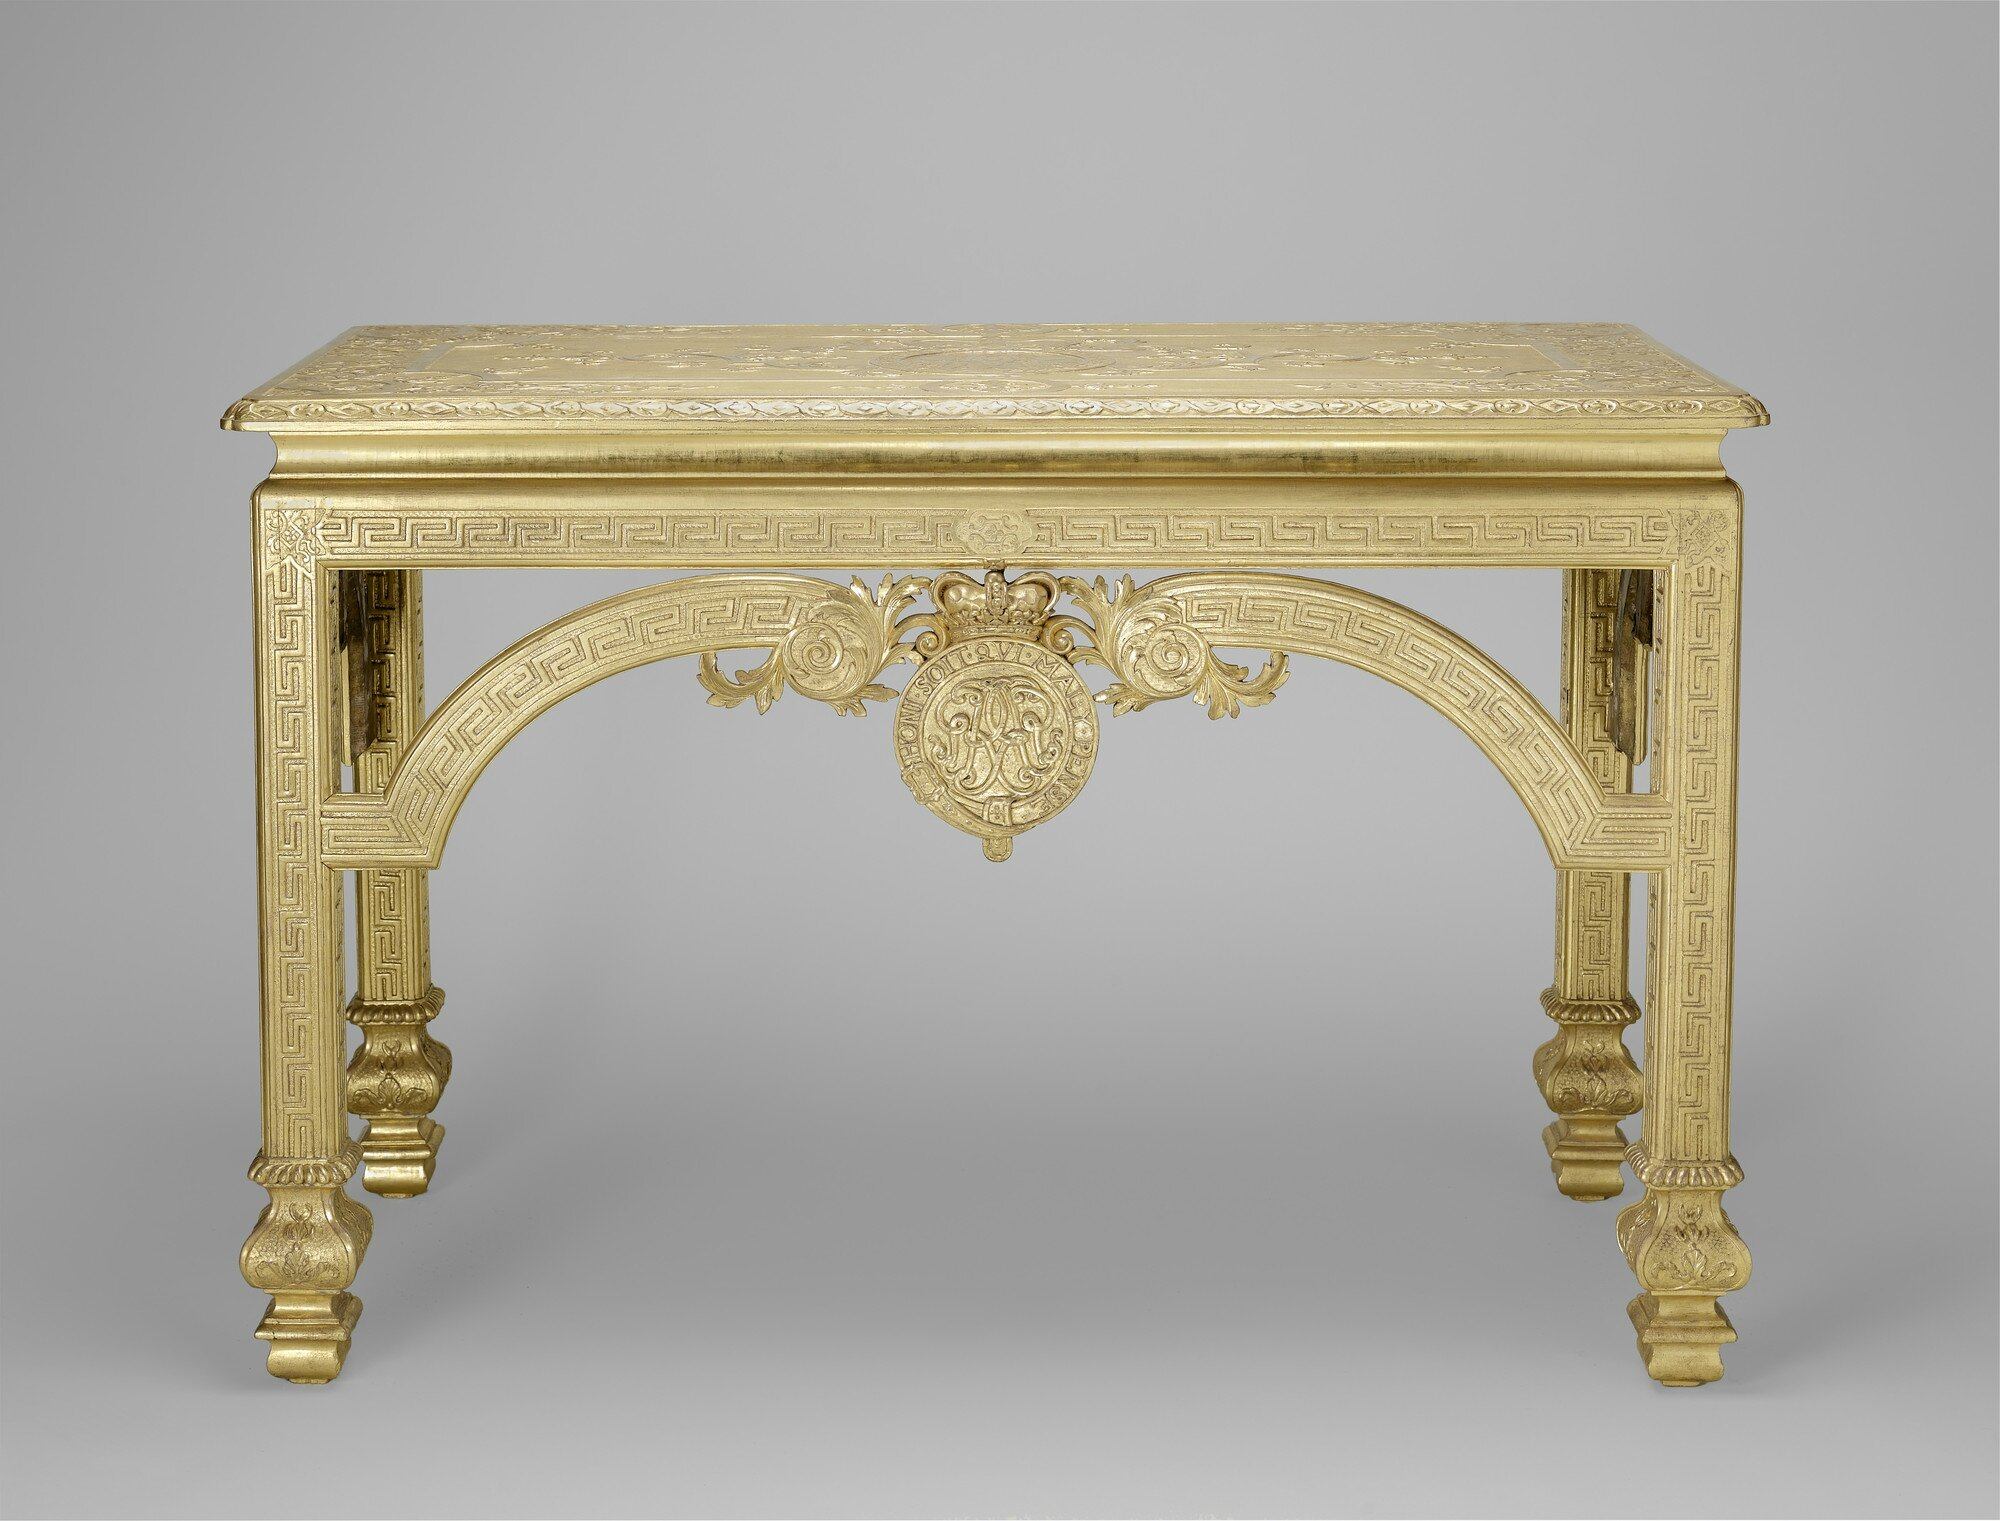 Marvelous Gilded And Gessoed Walnut And Oak, 84.0 X 124.0 X 57.0 Cm. RCIN 1102. Royal  Collection Trust/© Her Majesty Queen Elizabeth II 2014